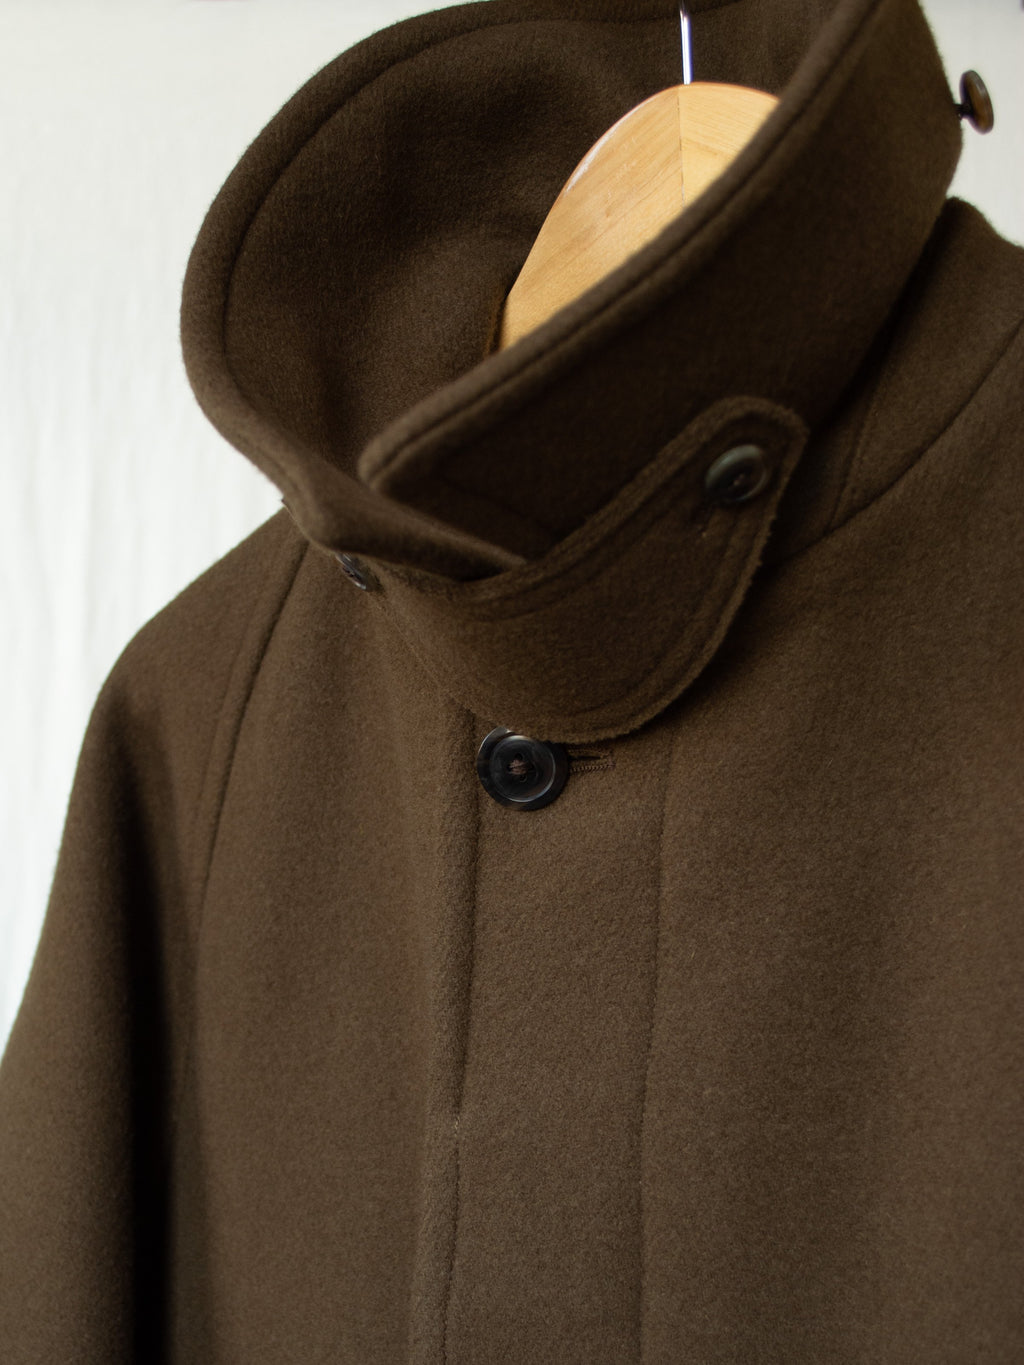 Namu Shop - Kaptain Sunshine Traveller Coat - Khaki Brown